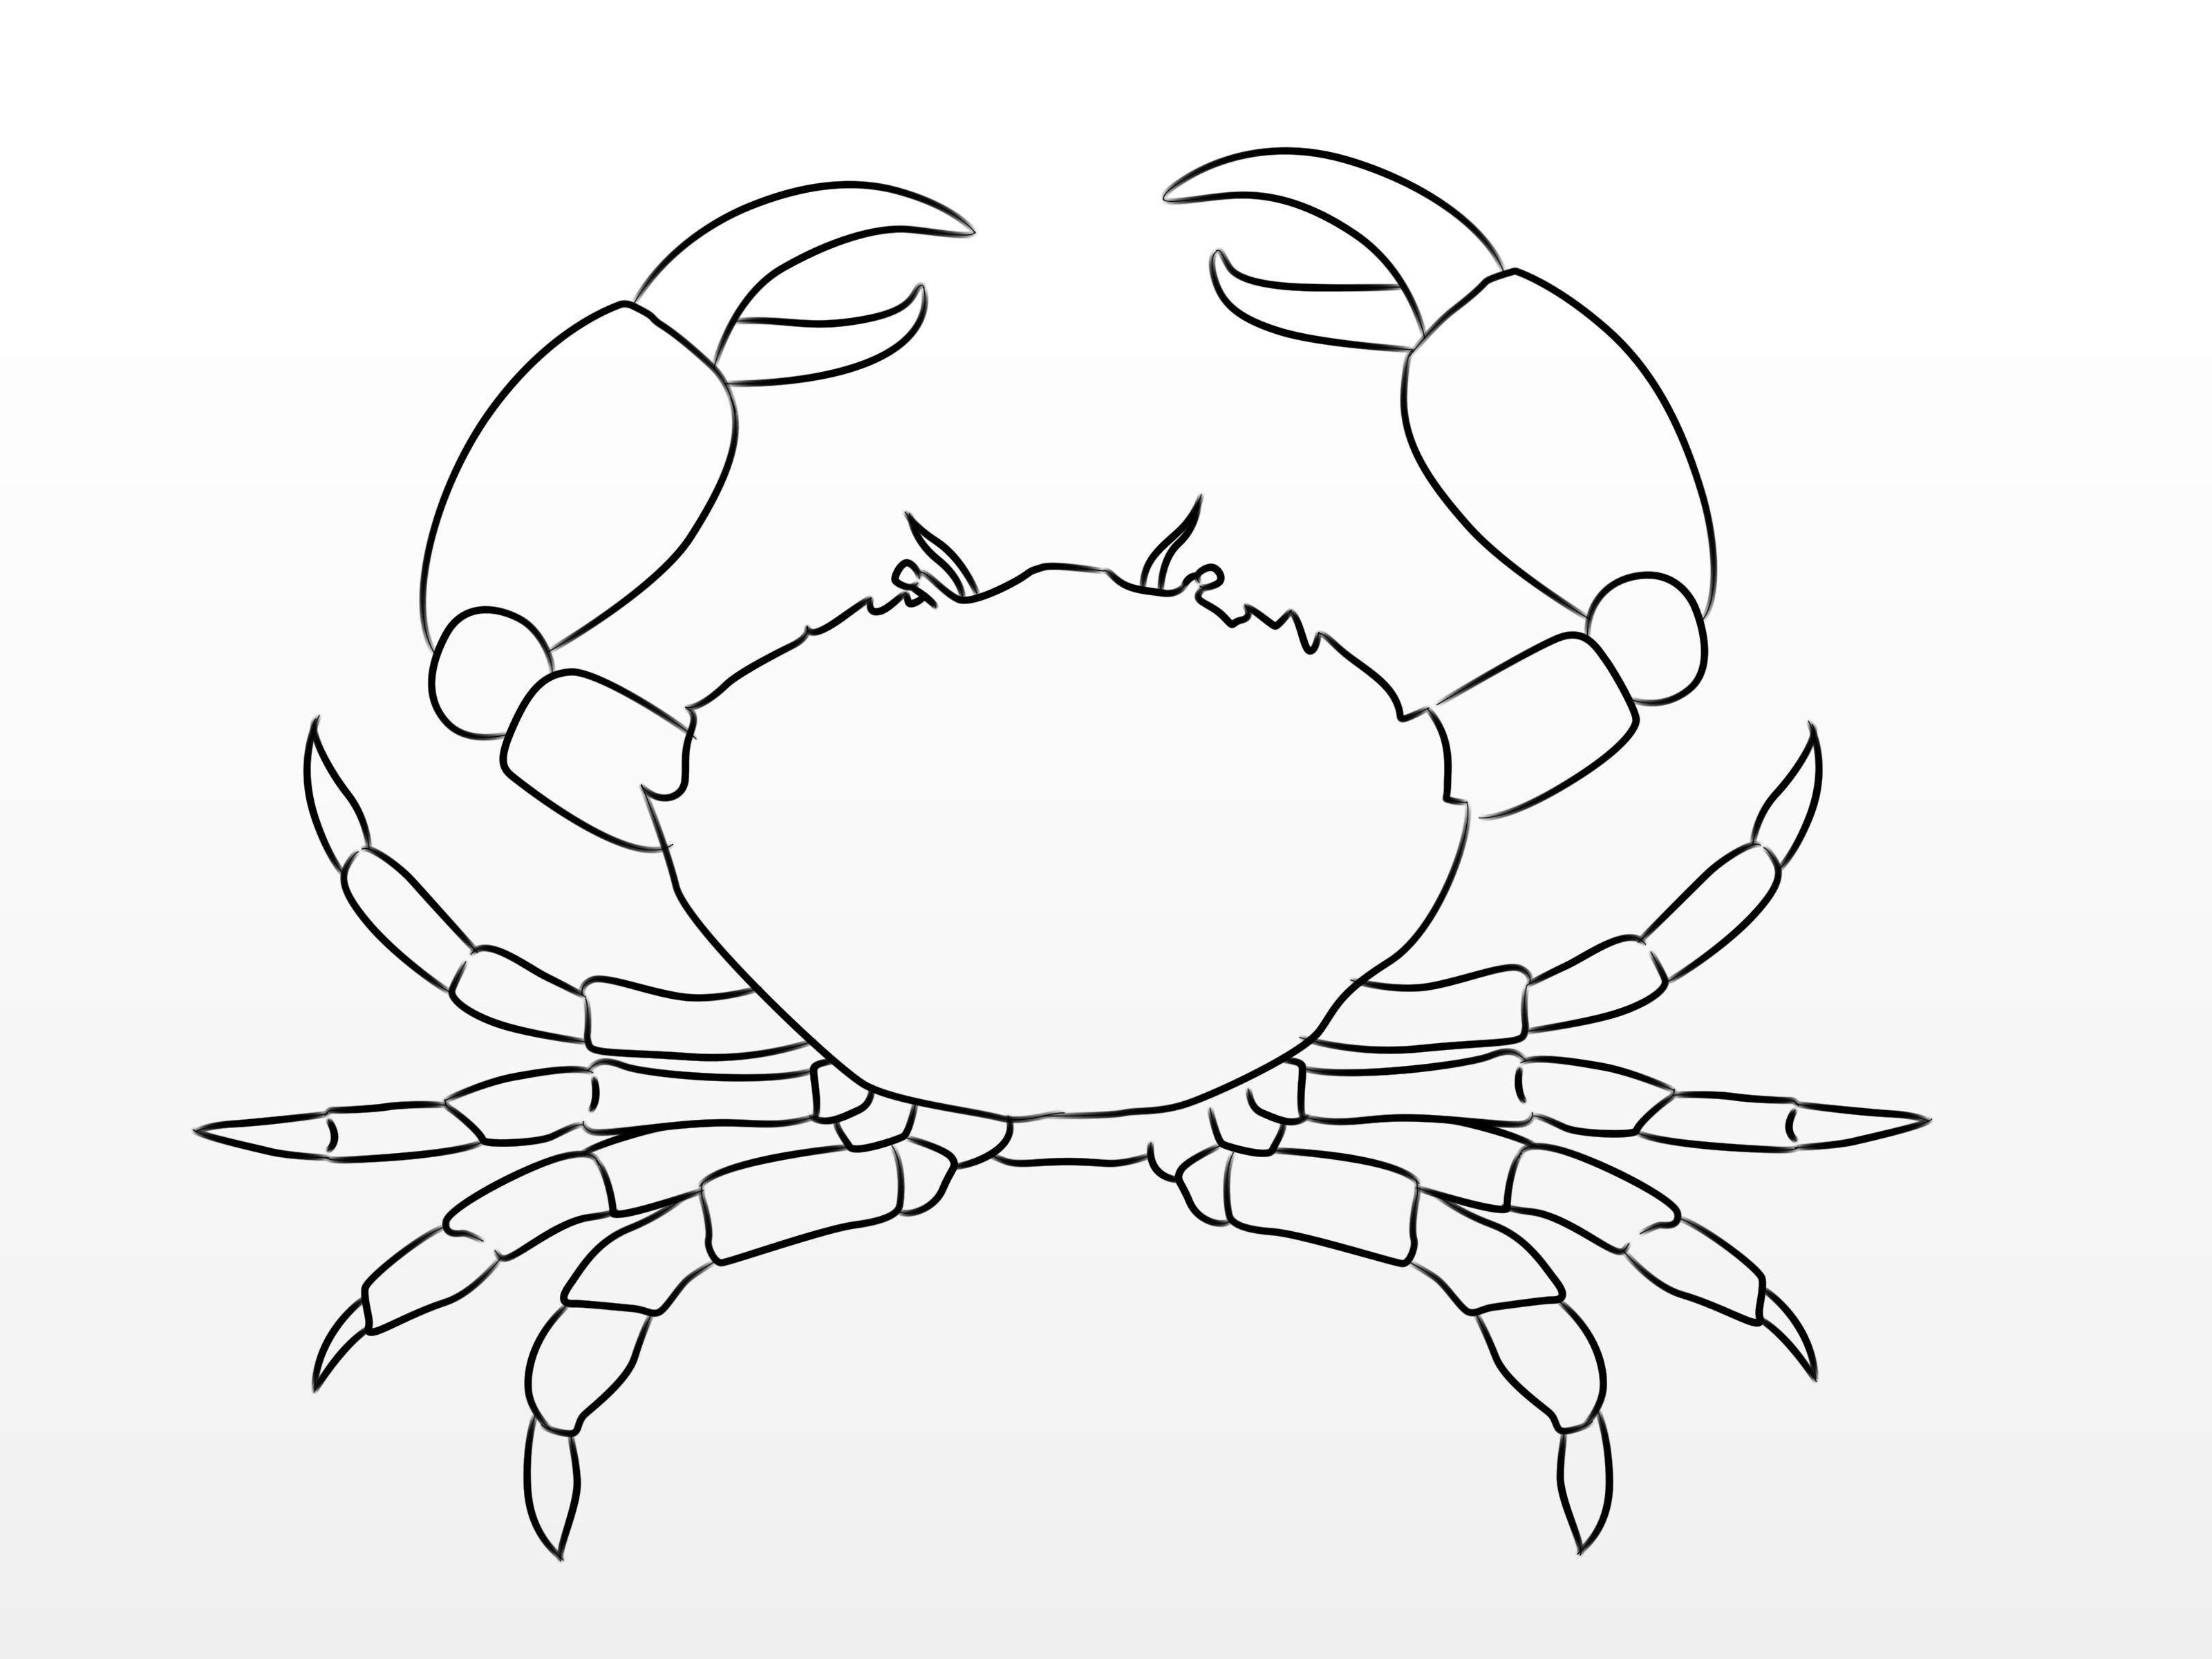 Draw a Crab  Drawings Animal paintings and Drawing art